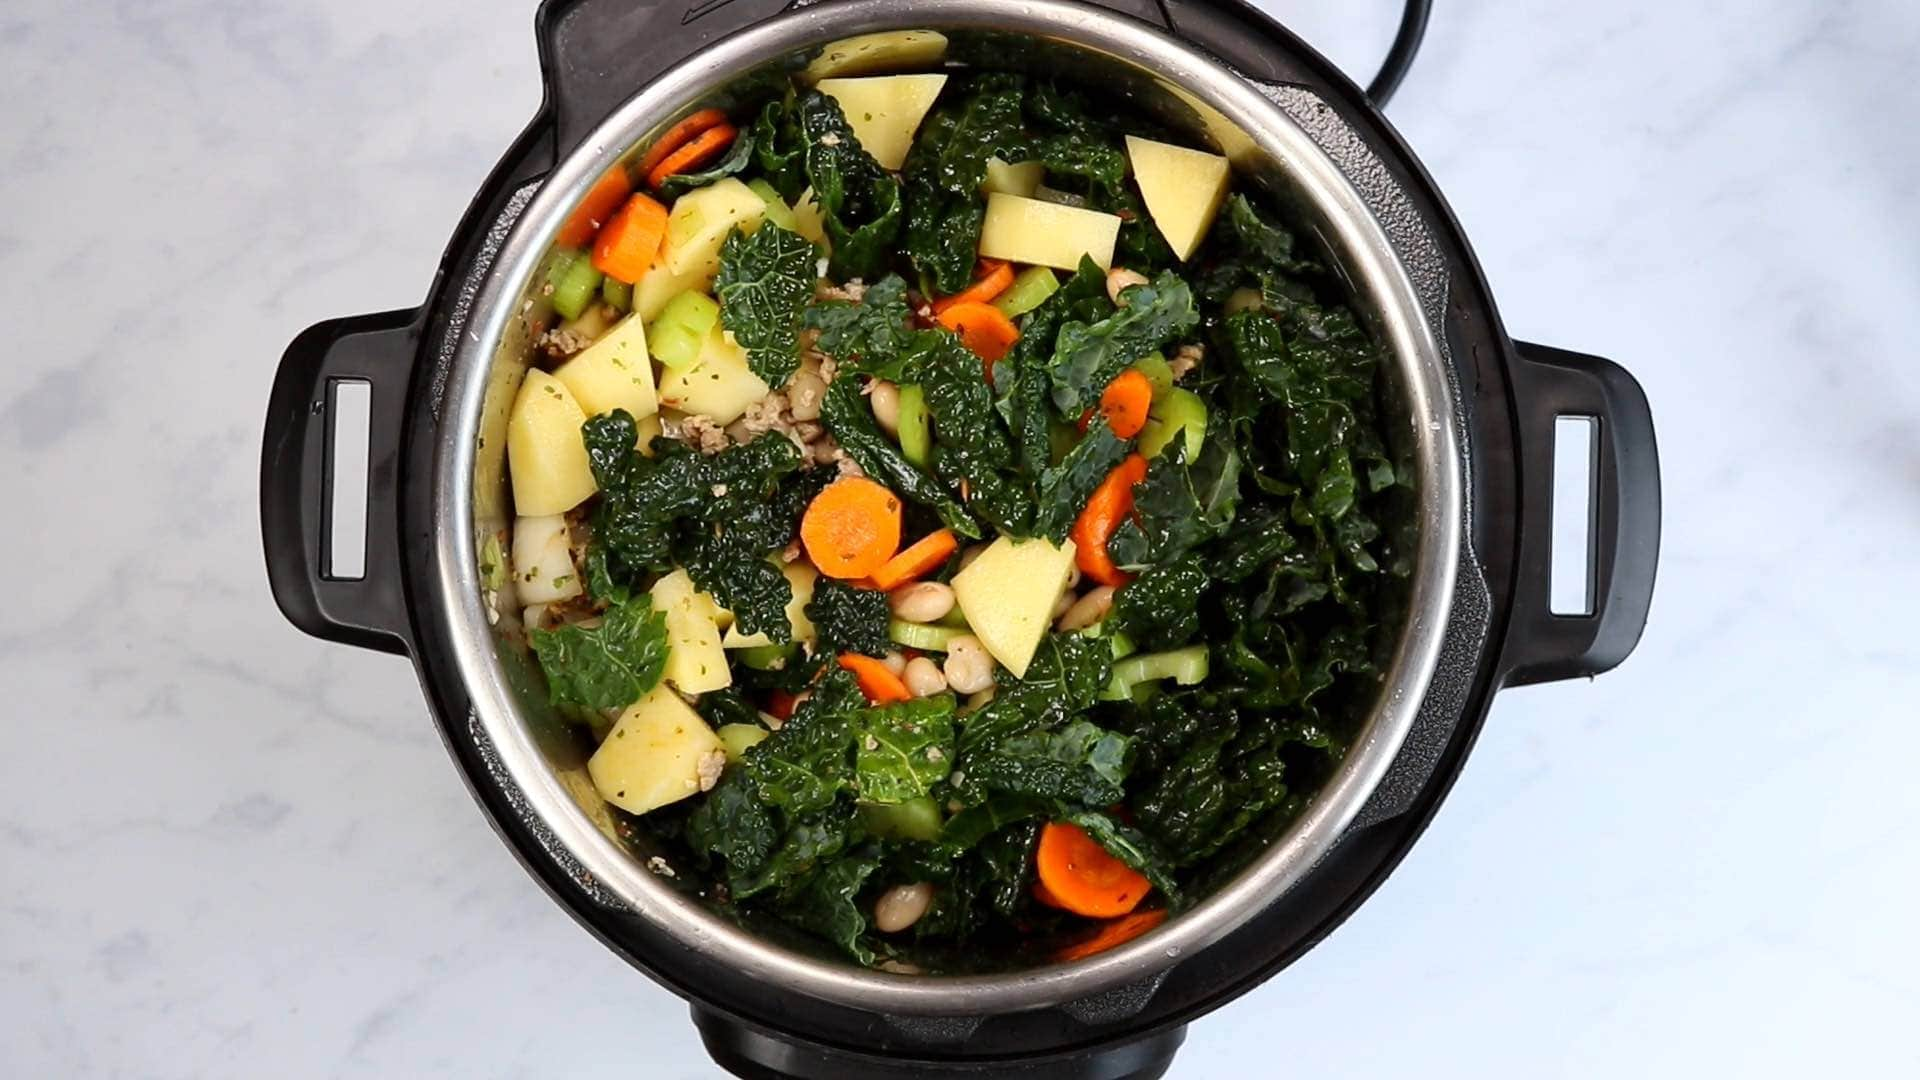 turkey, broth, onion, garlic, kale, potatoes, carrot, celery and white beans in an Instant Pot